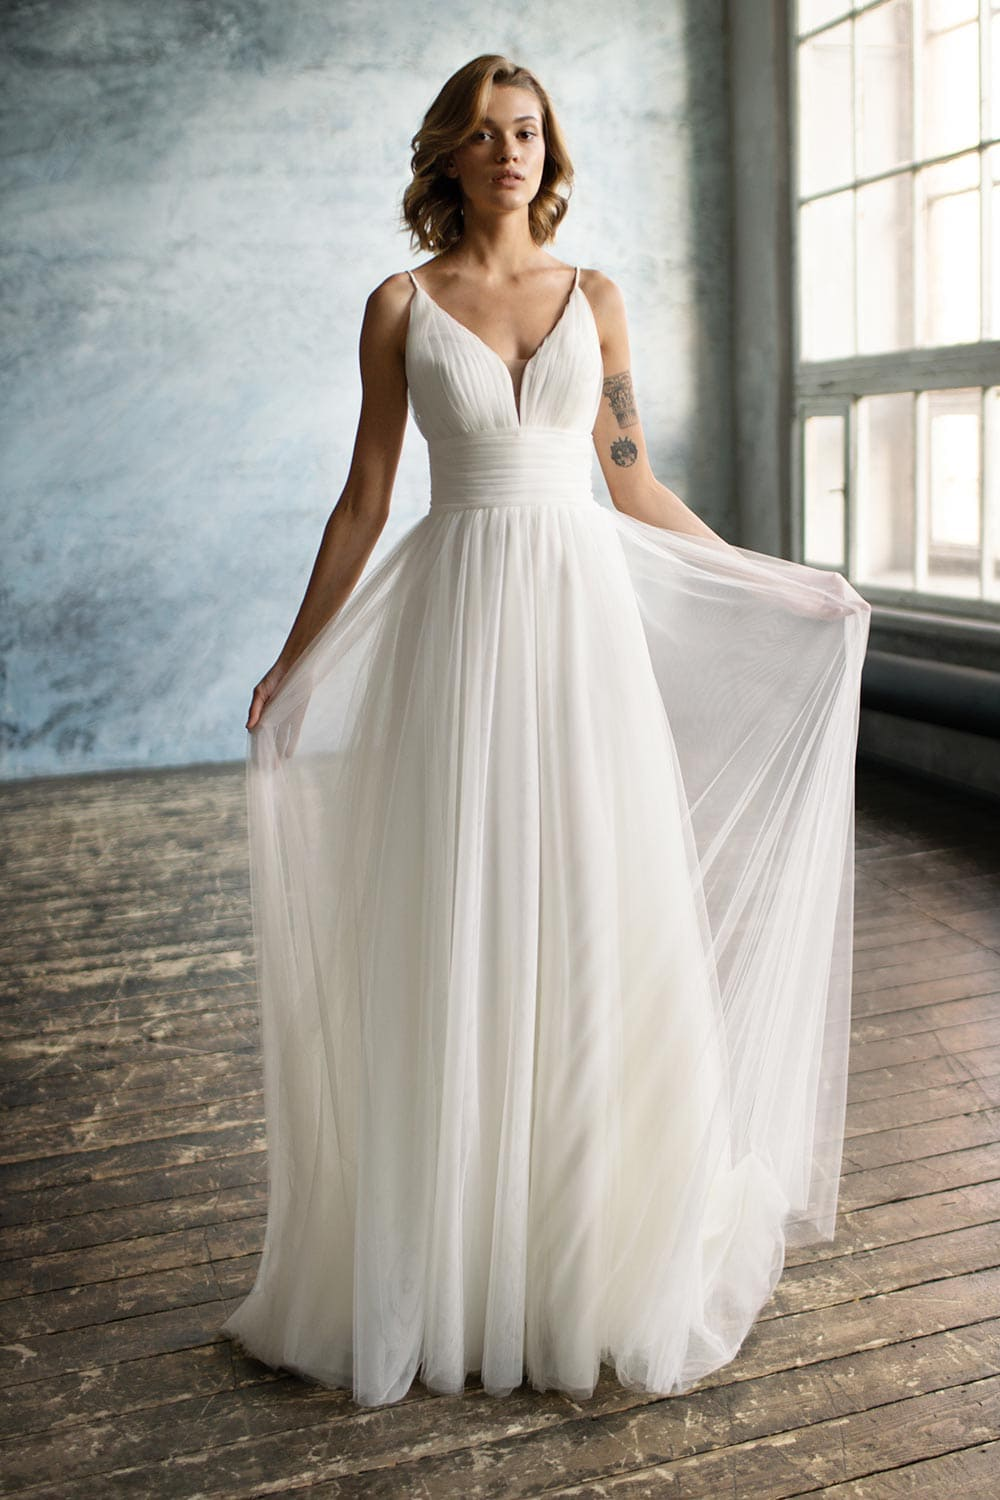 bridal shop near me wedding dress shop near me boho wedding dress wedding dress simple 5 2